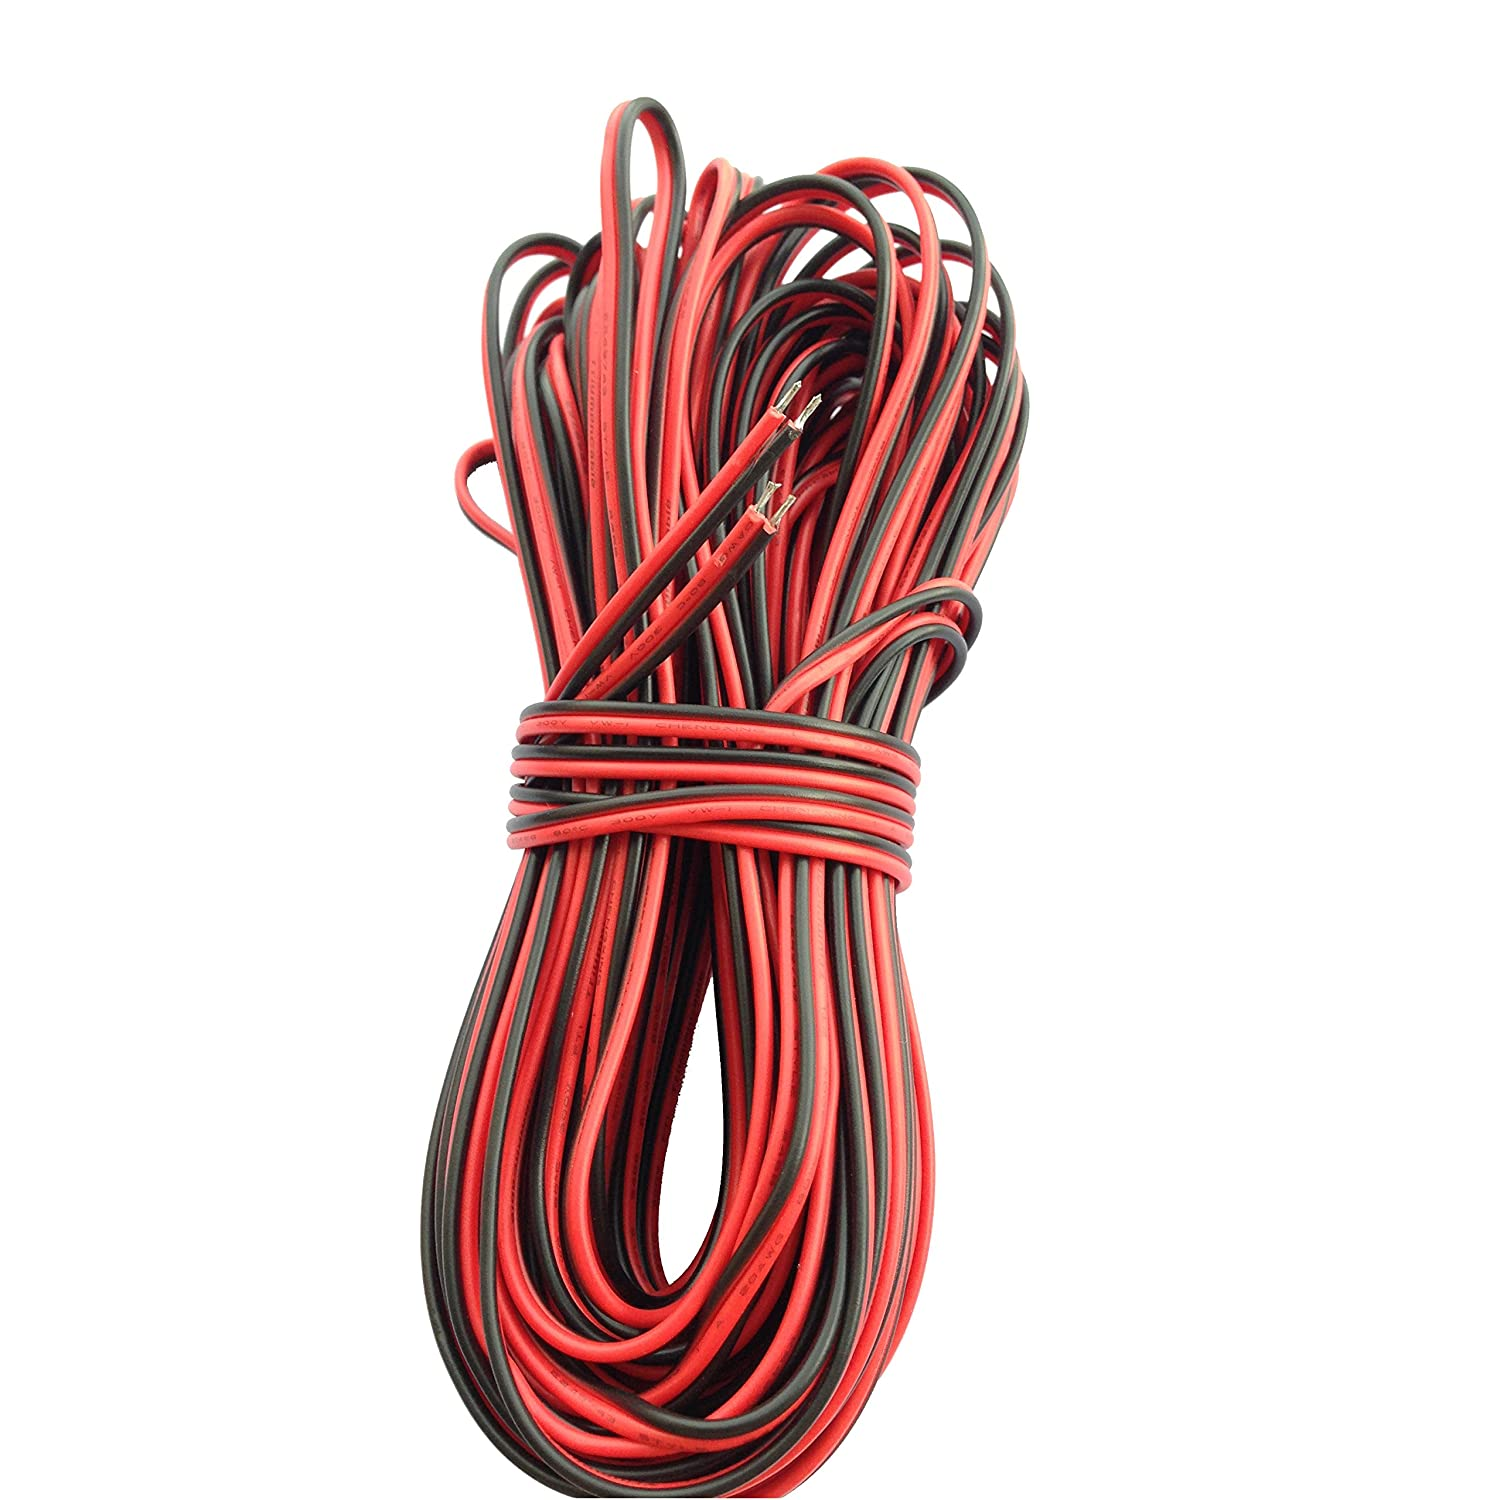 Ksmile 20M 20AWG 66ft Extension Cable Wire Cord for Led Strips Single Colour 3528 5050, 2 Pin Red/Black Hookup Wire 12V DC 66feet